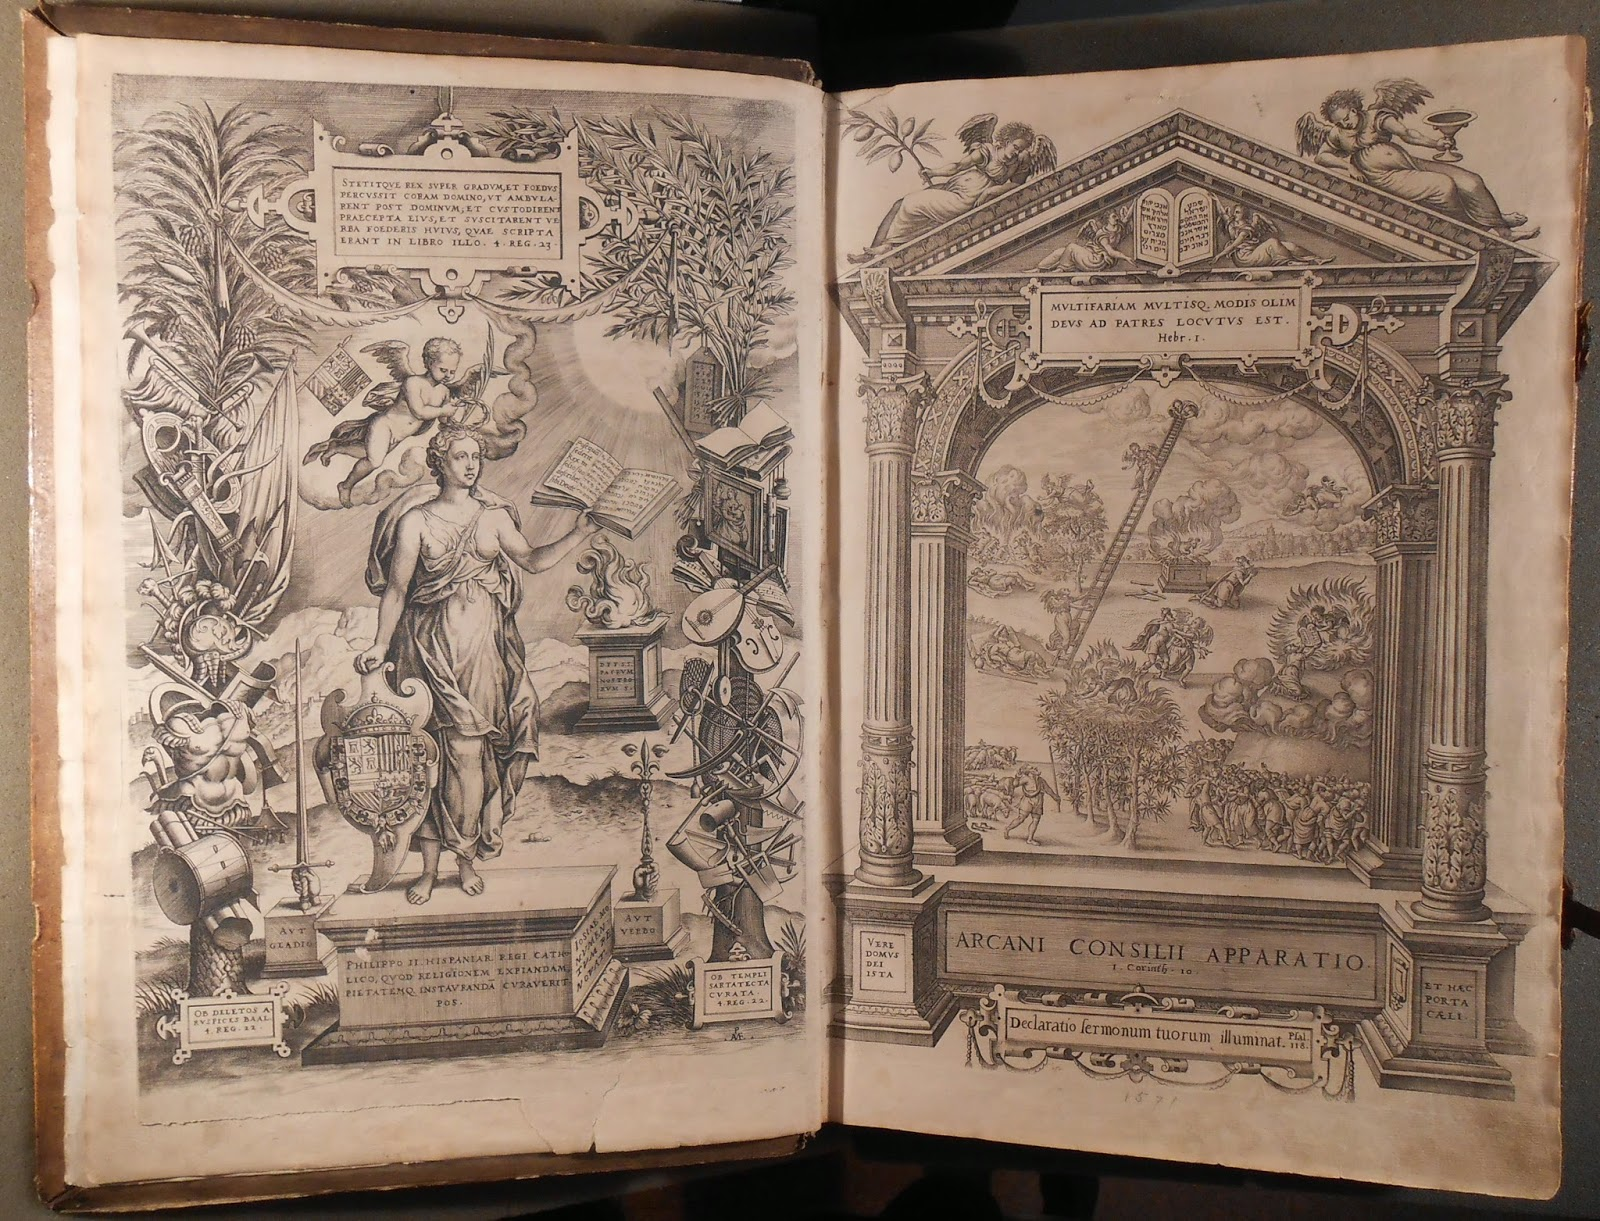 An open book showing two pages of elaborately detailed illustrations.